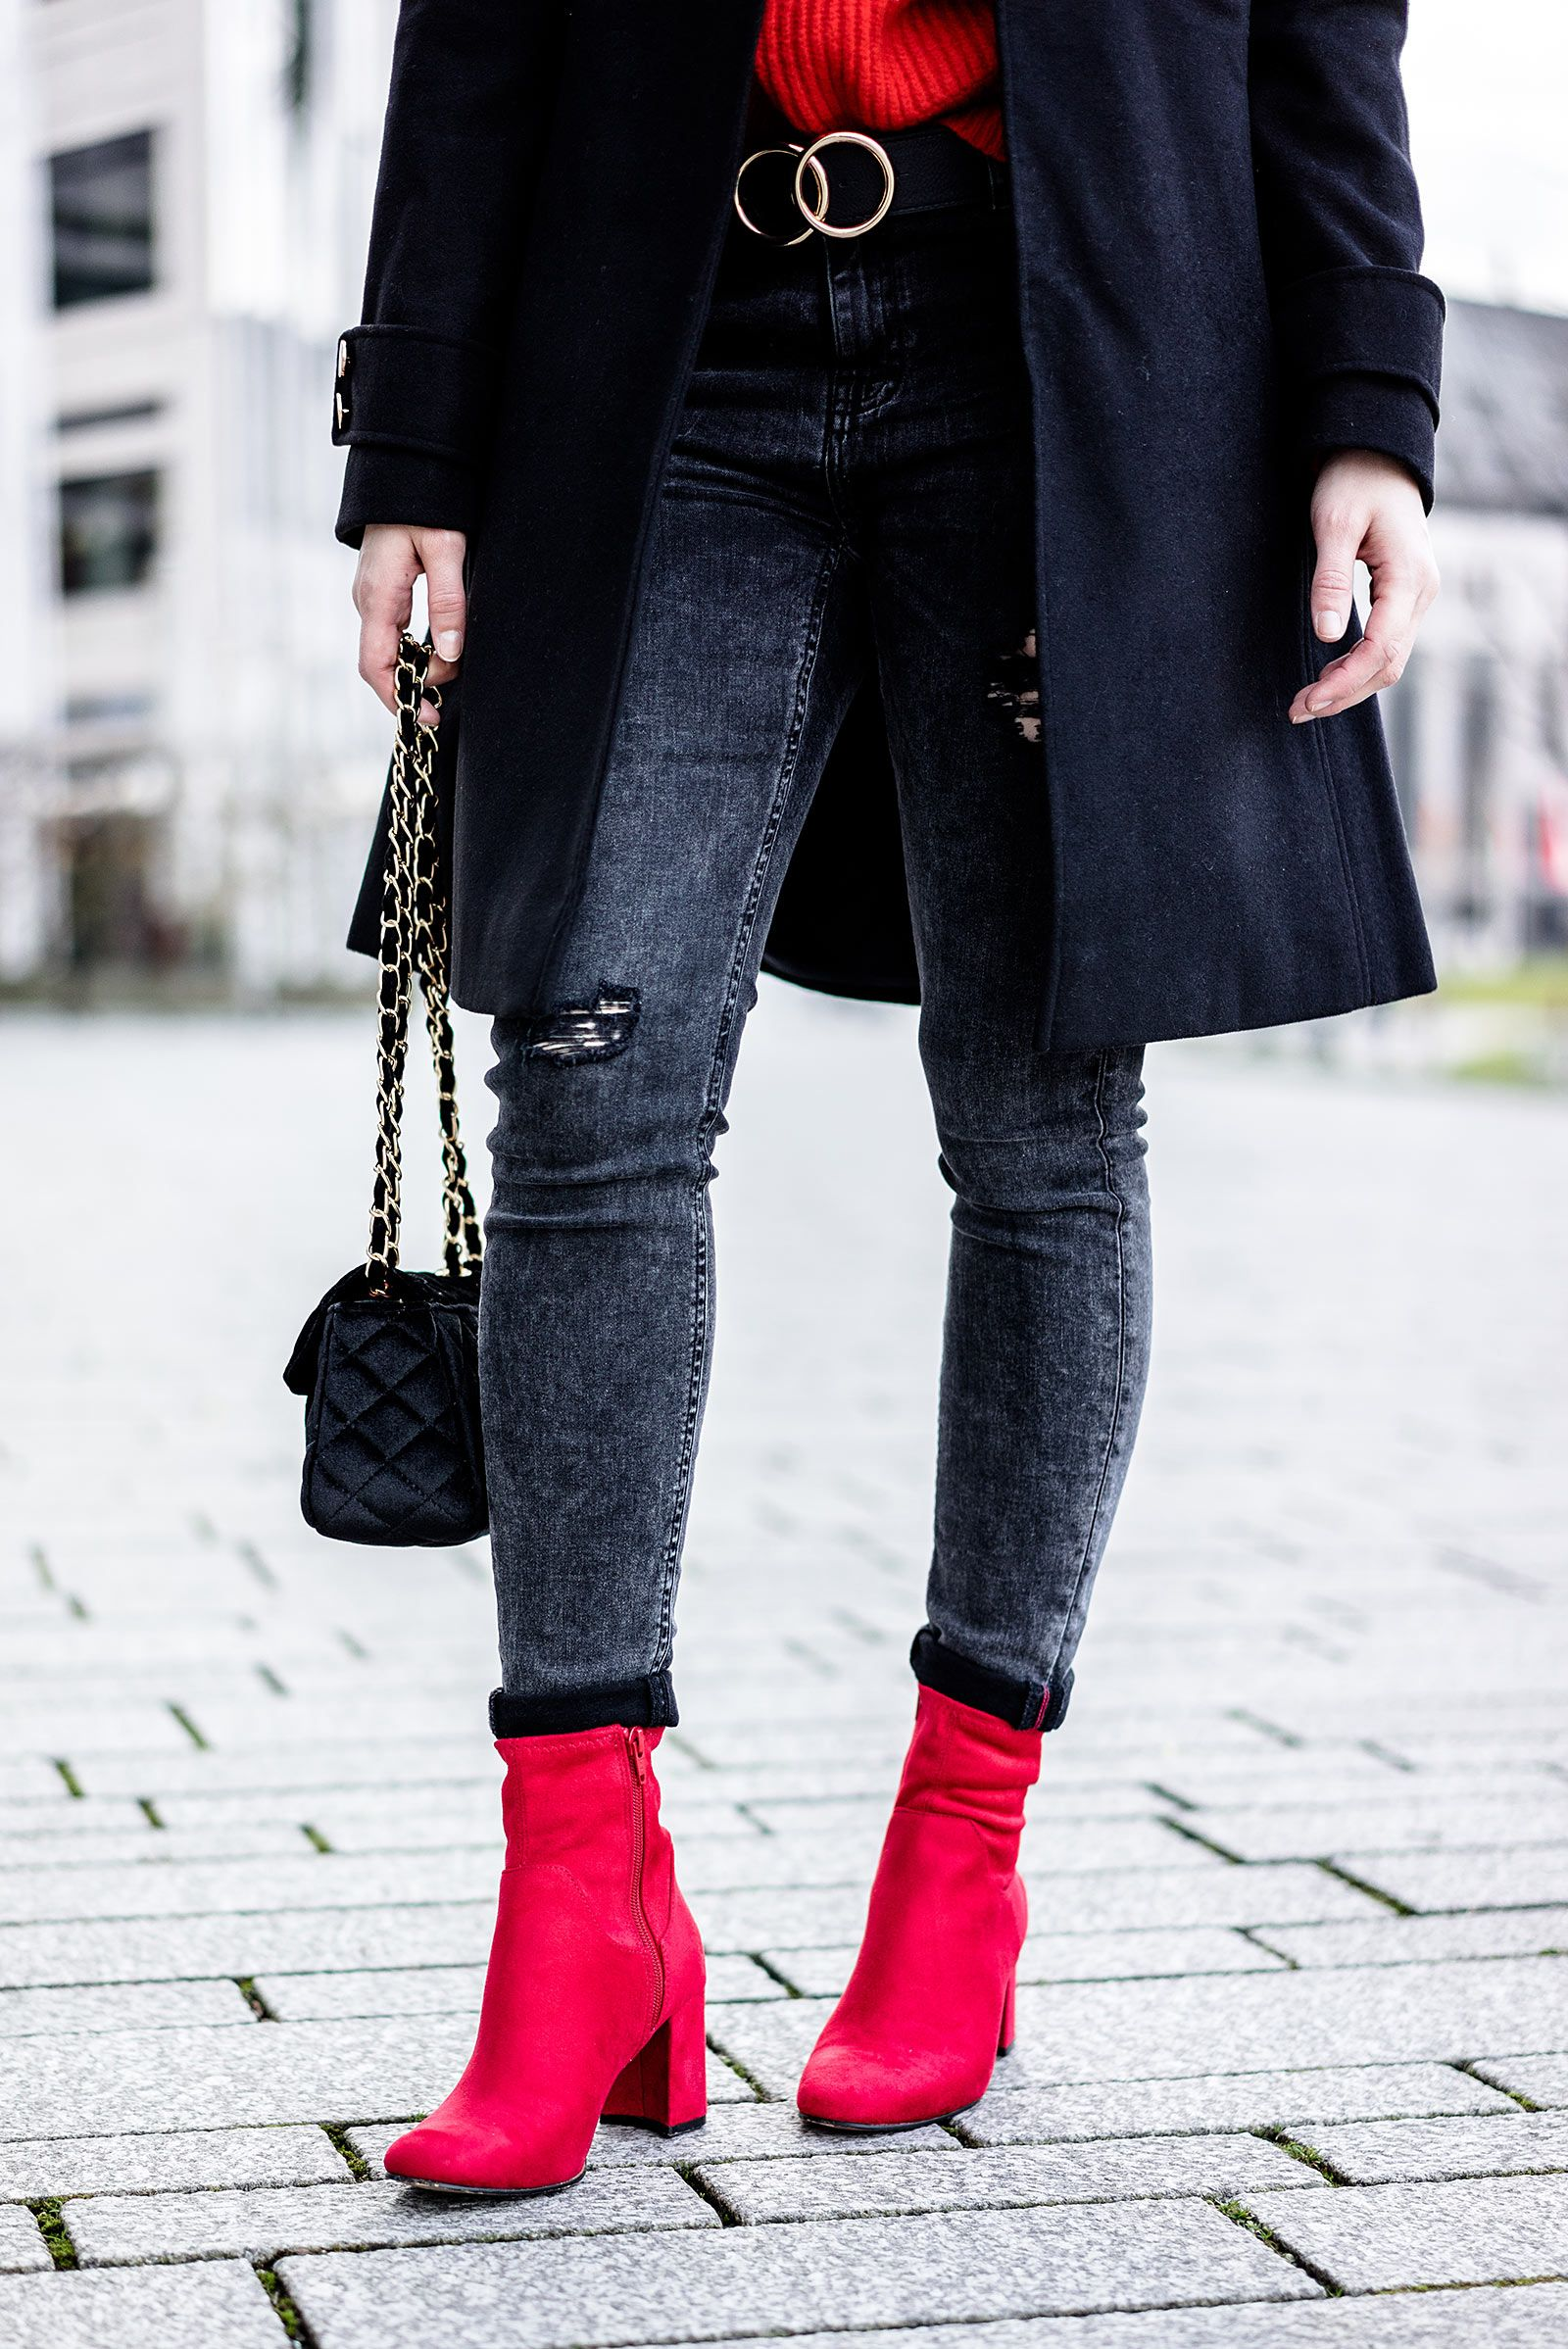 aa8d302cc82f1a Rote Schuhe kombinieren - Meine Outfit-Idee! - Fashion Blog ...